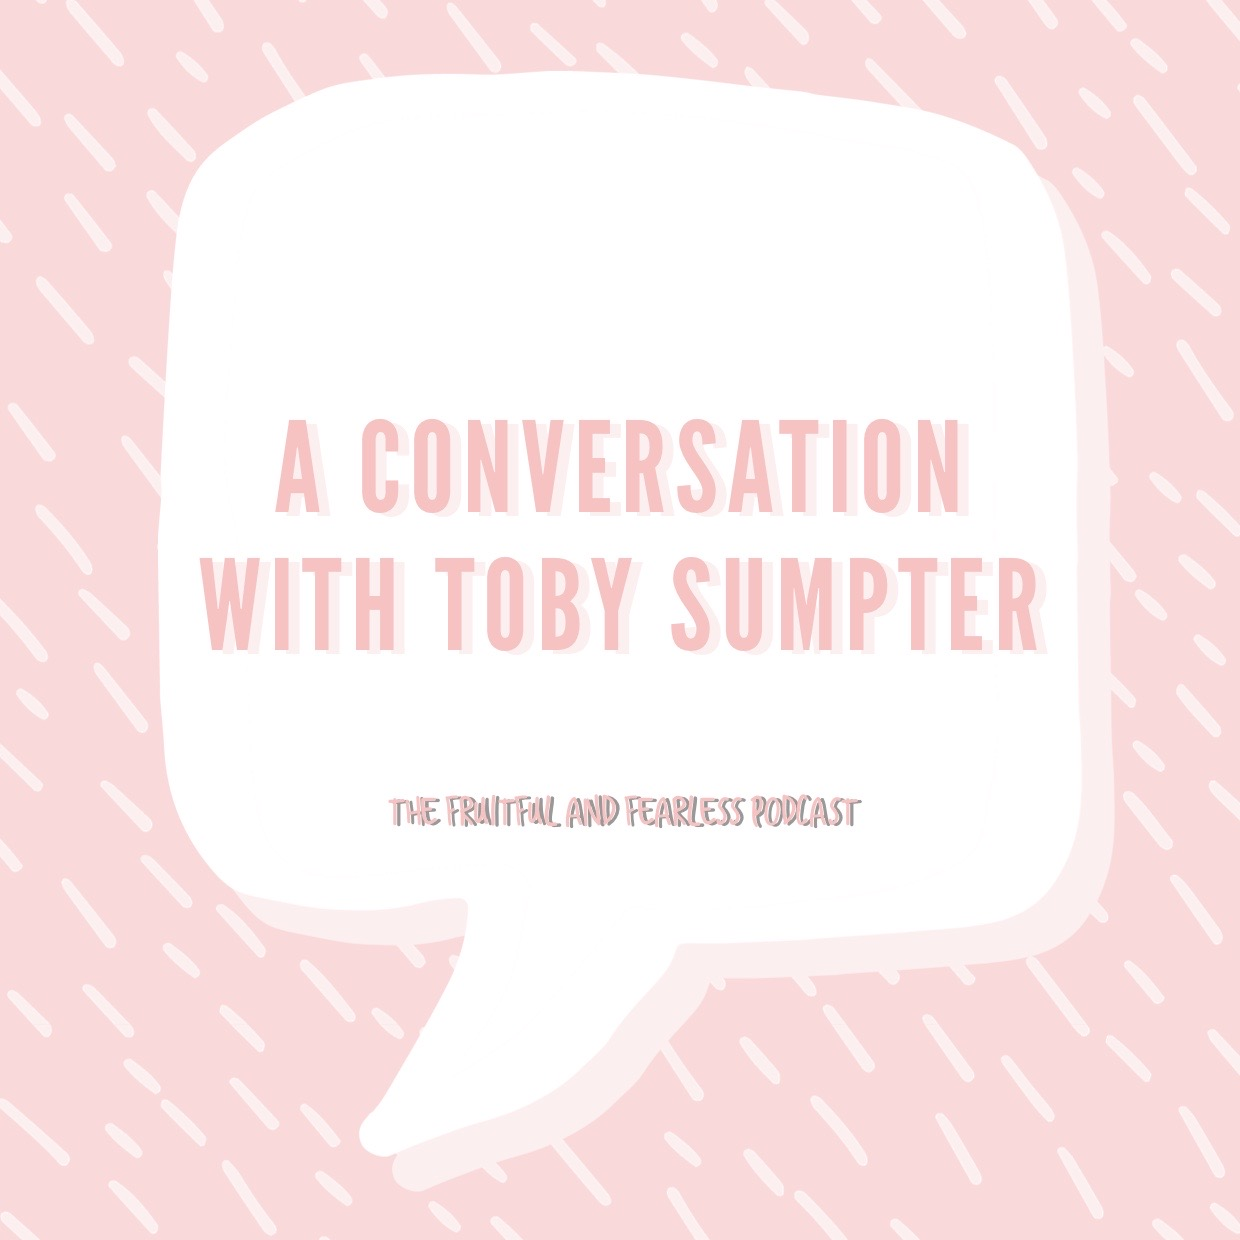 #23 Interview With Toby Sumpter